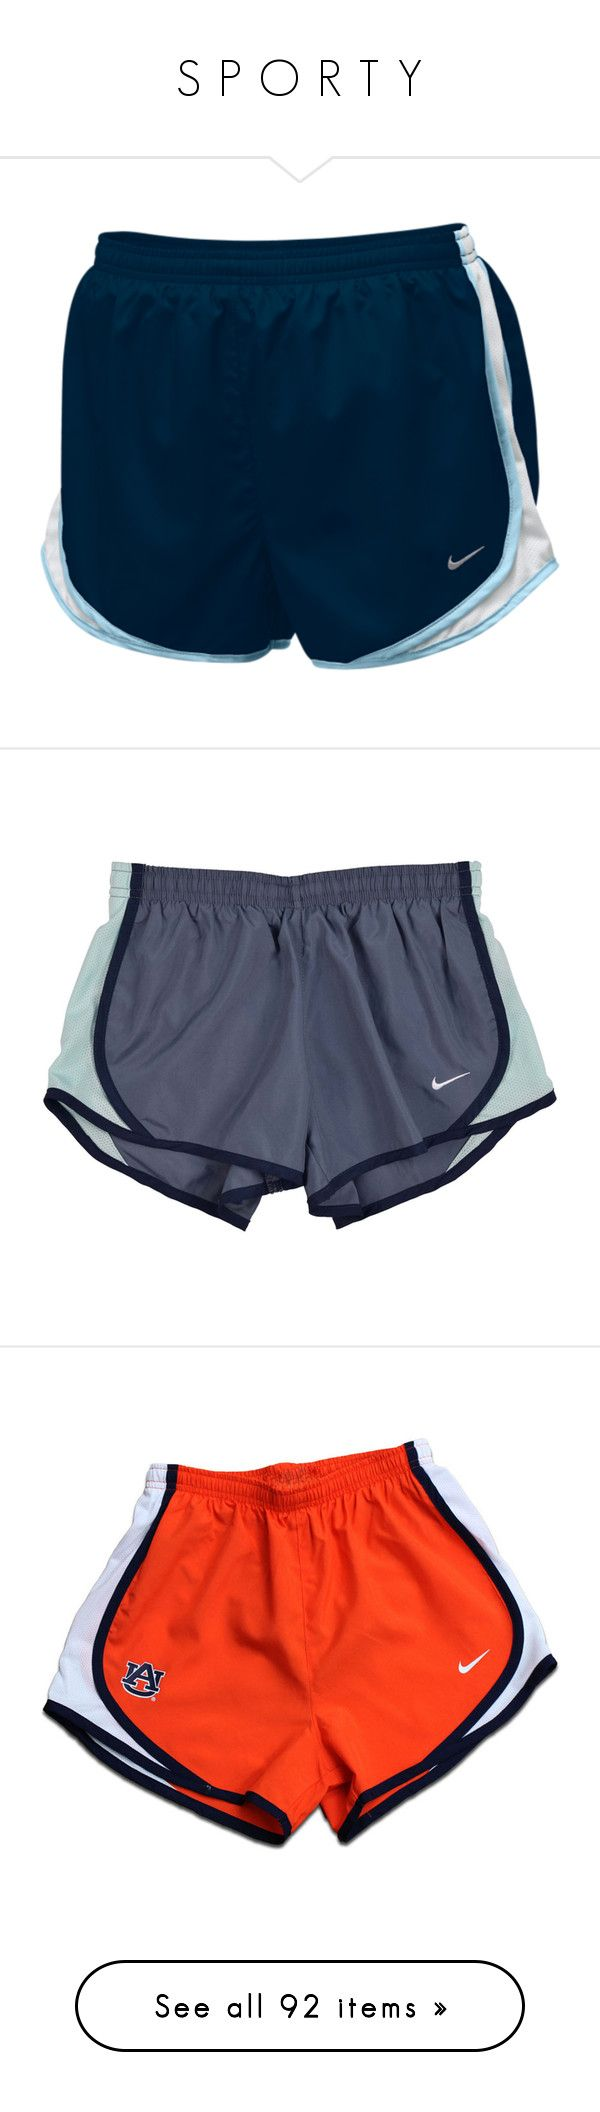 """""""S P O R T Y"""" by palemoonlight-x ❤ liked on Polyvore featuring activewear, activewear shorts, shorts, bottoms, running shorts, nike, nike sportswear, nike activewear, athletic shorts and pants"""